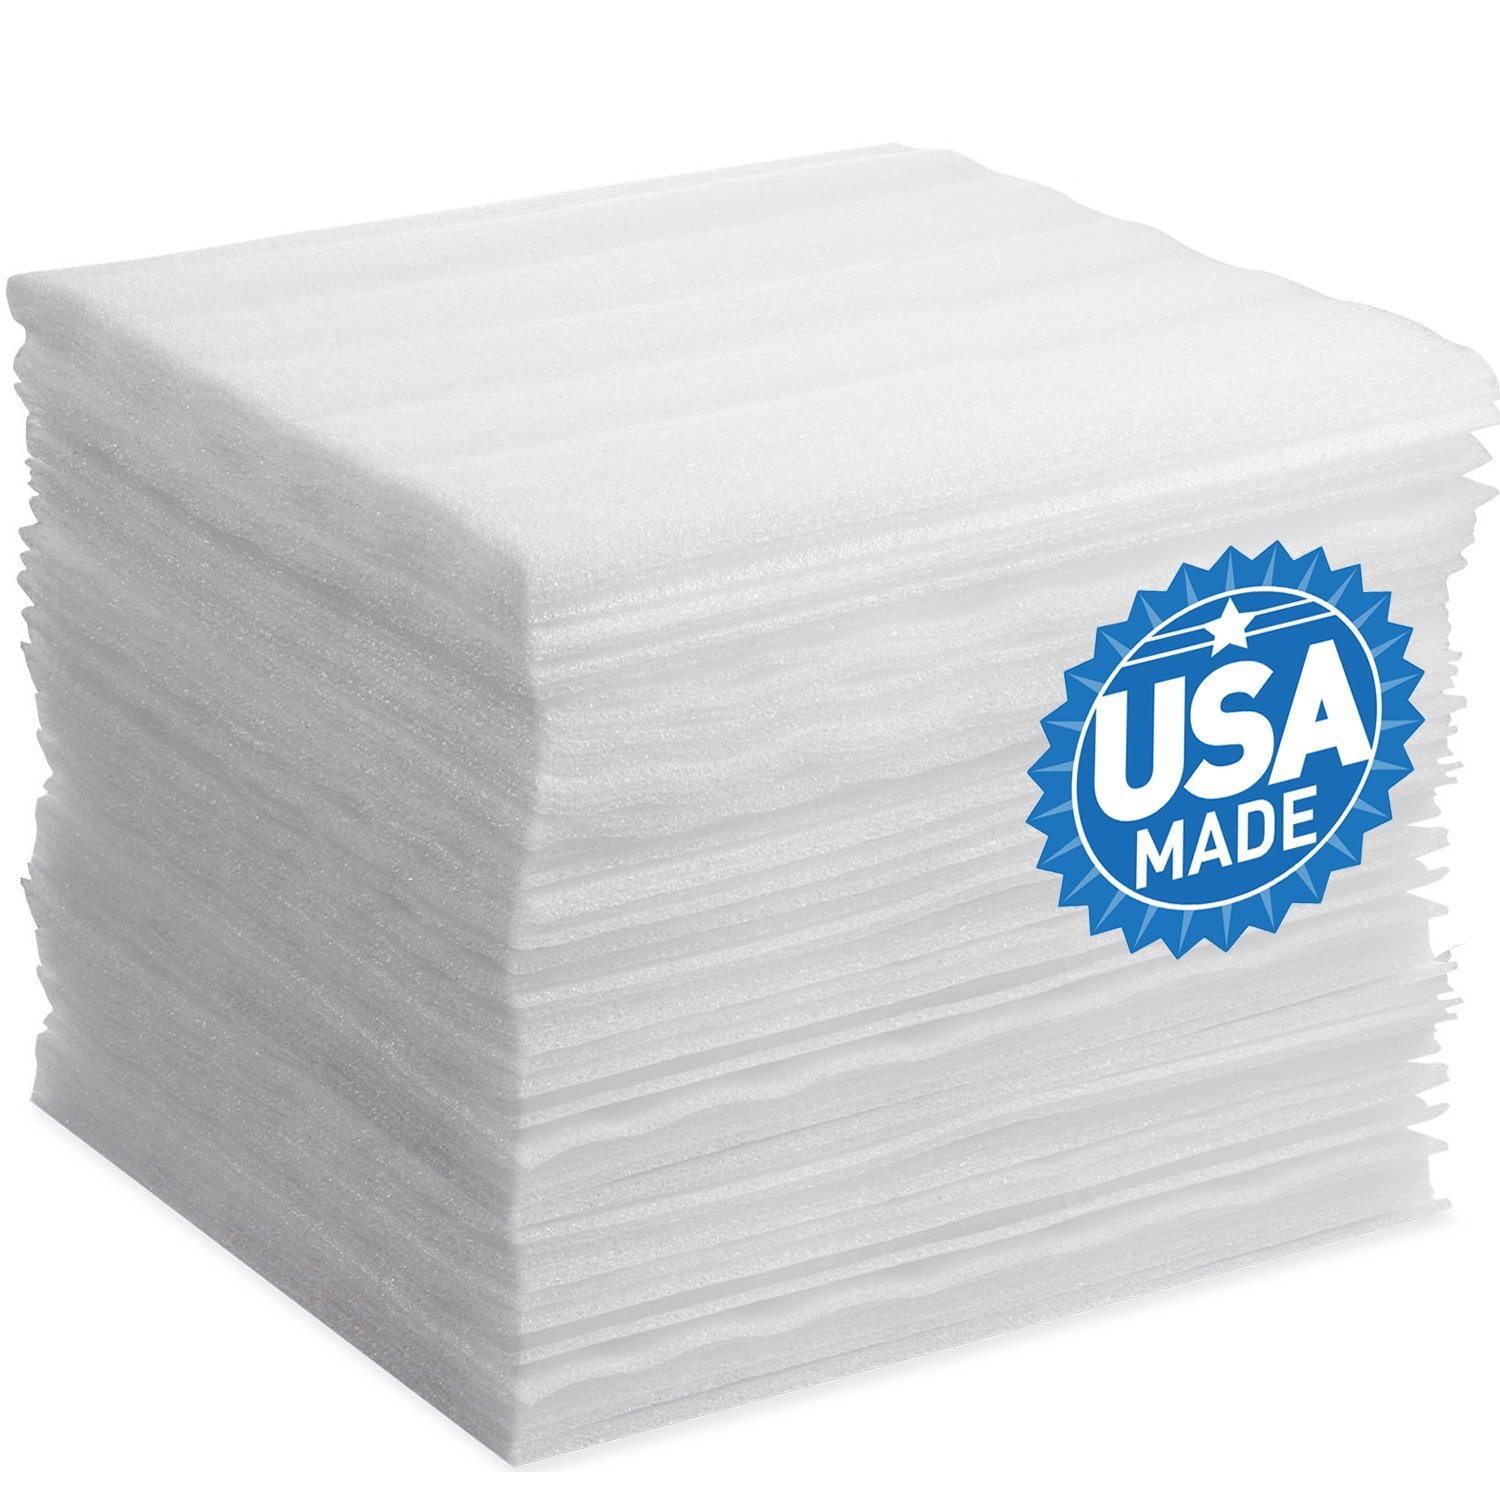 Foam Wraps, DAT 12'' x 12'' Foam Wrap Sheets Cushioning for Moving Storage Packing and Shipping Supplies, 50-Pack (White)